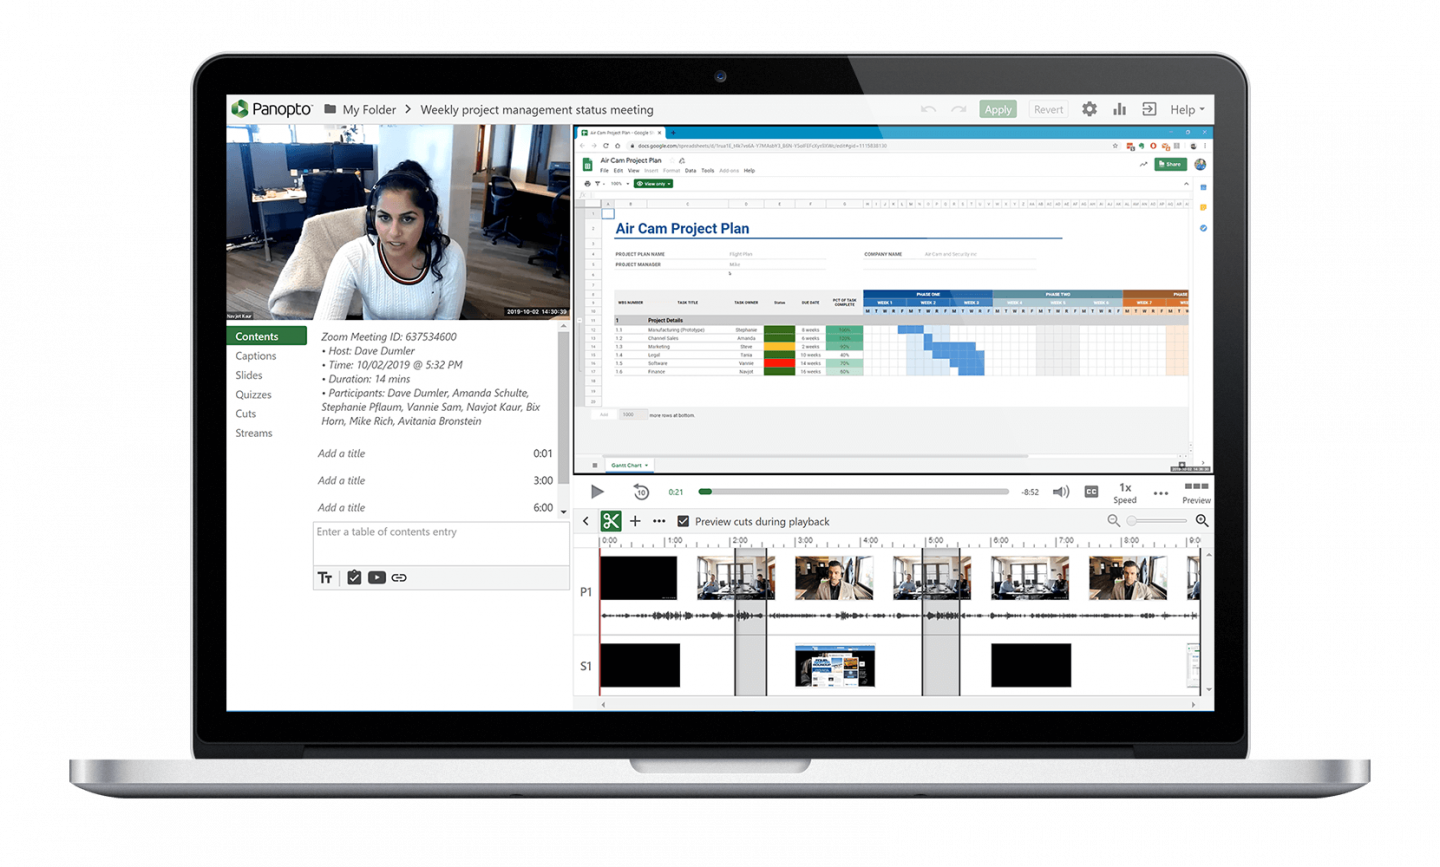 Panopto's video portal integrates with your existing unified communications tools like Zoom and Skype